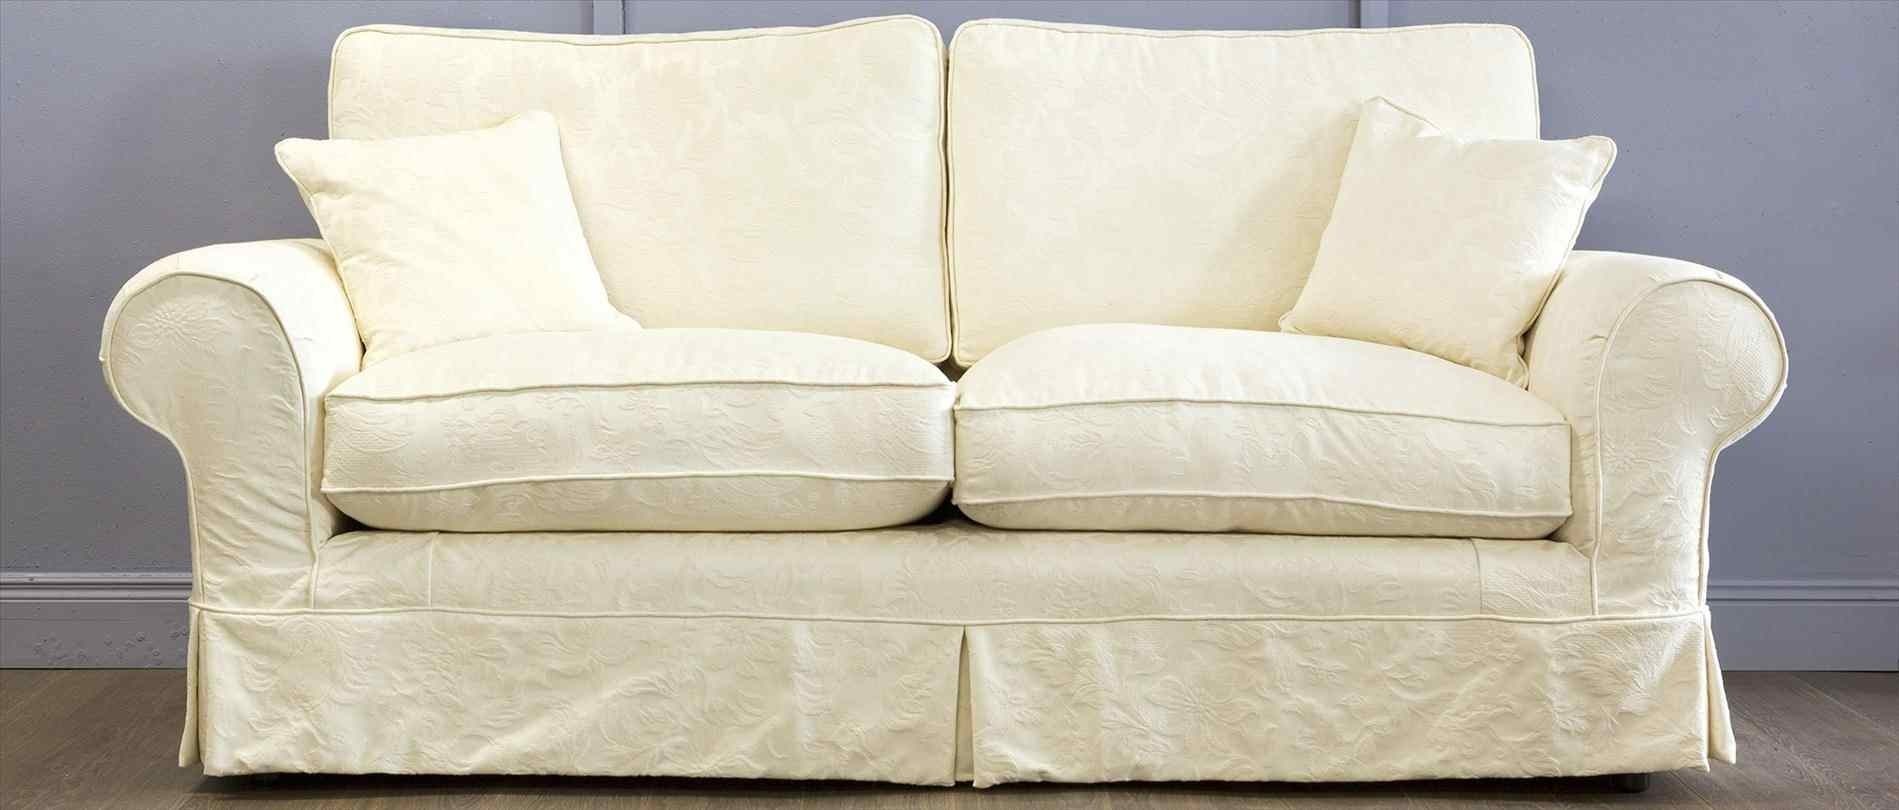 10 Best Ideas Sofas With Washable Covers Sofa Ideas